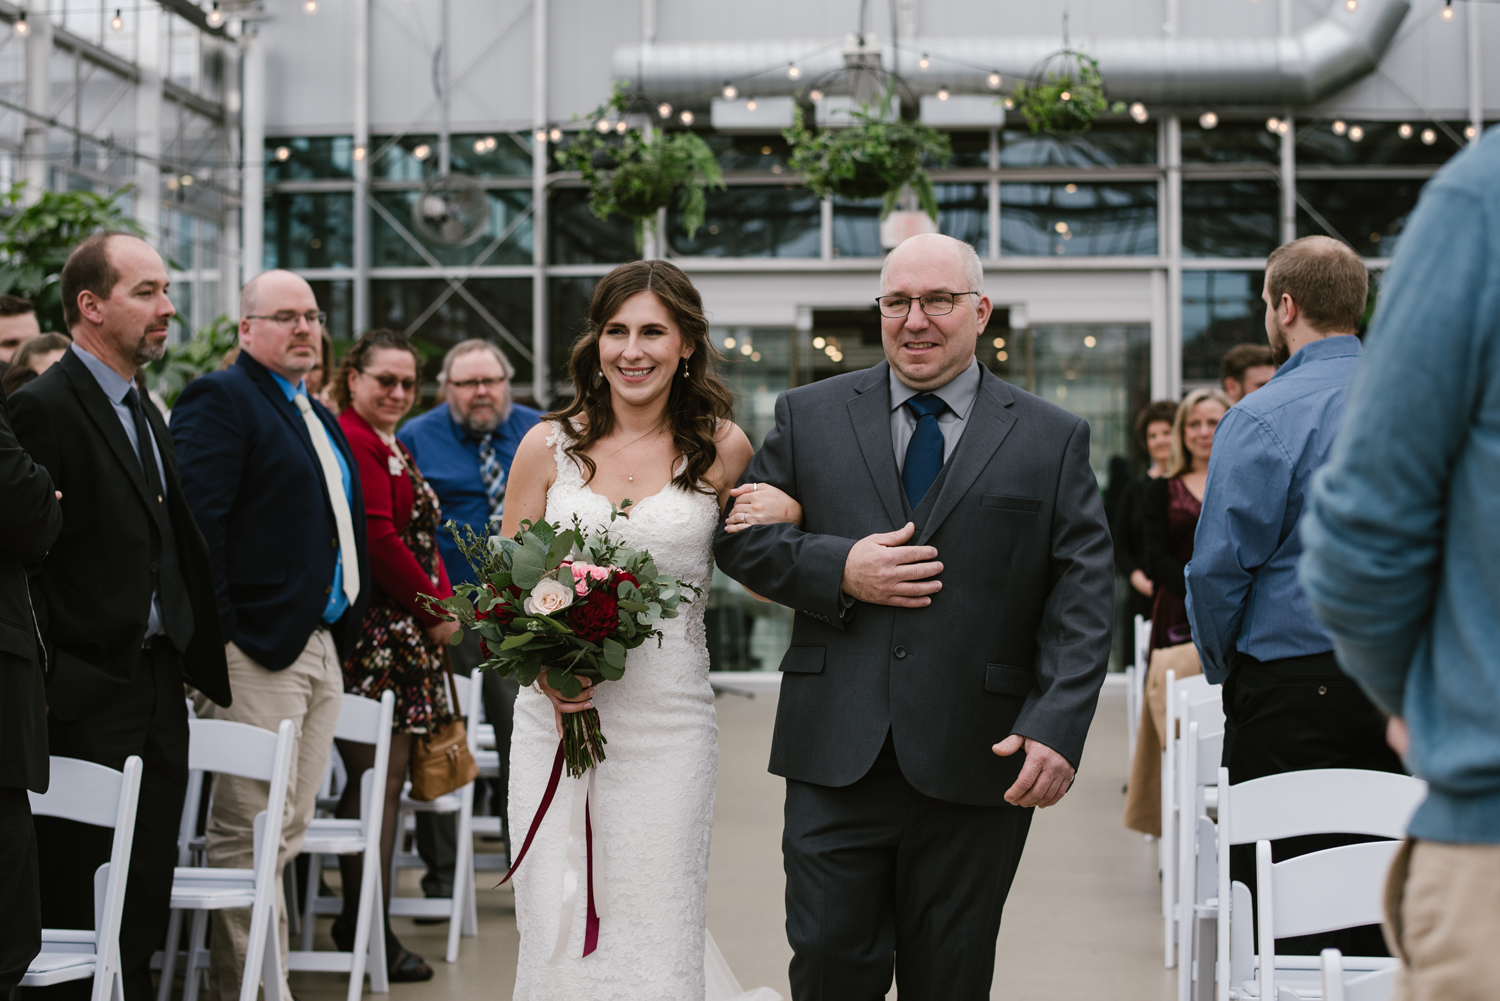 grand-rapids-downtown-market-wedding-photographer (70).jpg